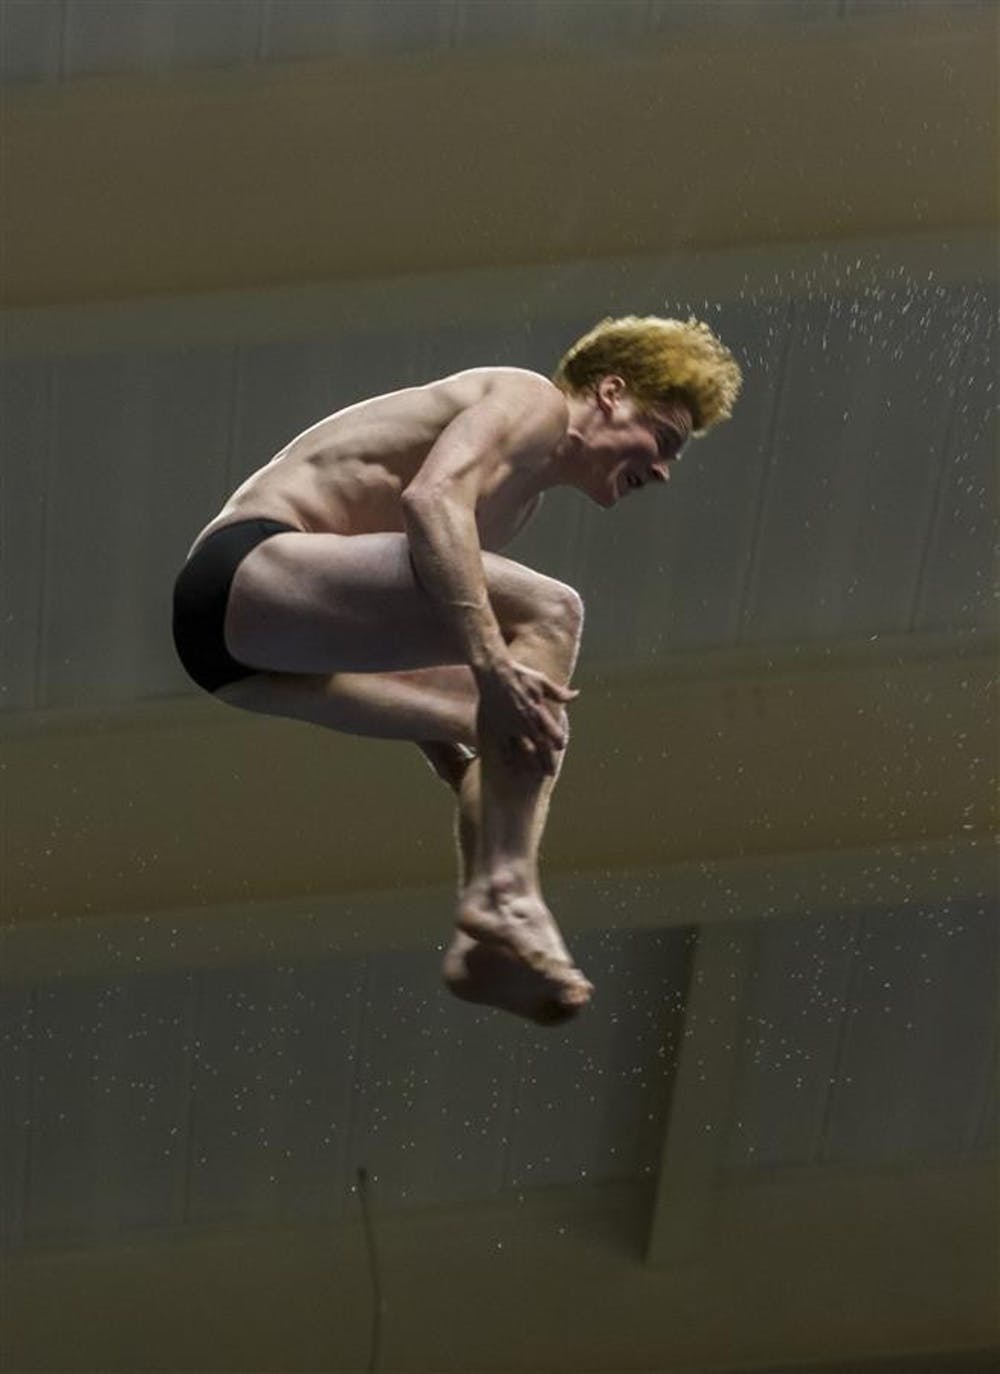 Junior Conor Murphy dives in the Big Ten Swimming and Diving Championships on March 1 in Bloomington. Murphy earned a spot at the NCAA Championships, which is set to begin this coming weekend at IUPUI in Indianapolis.